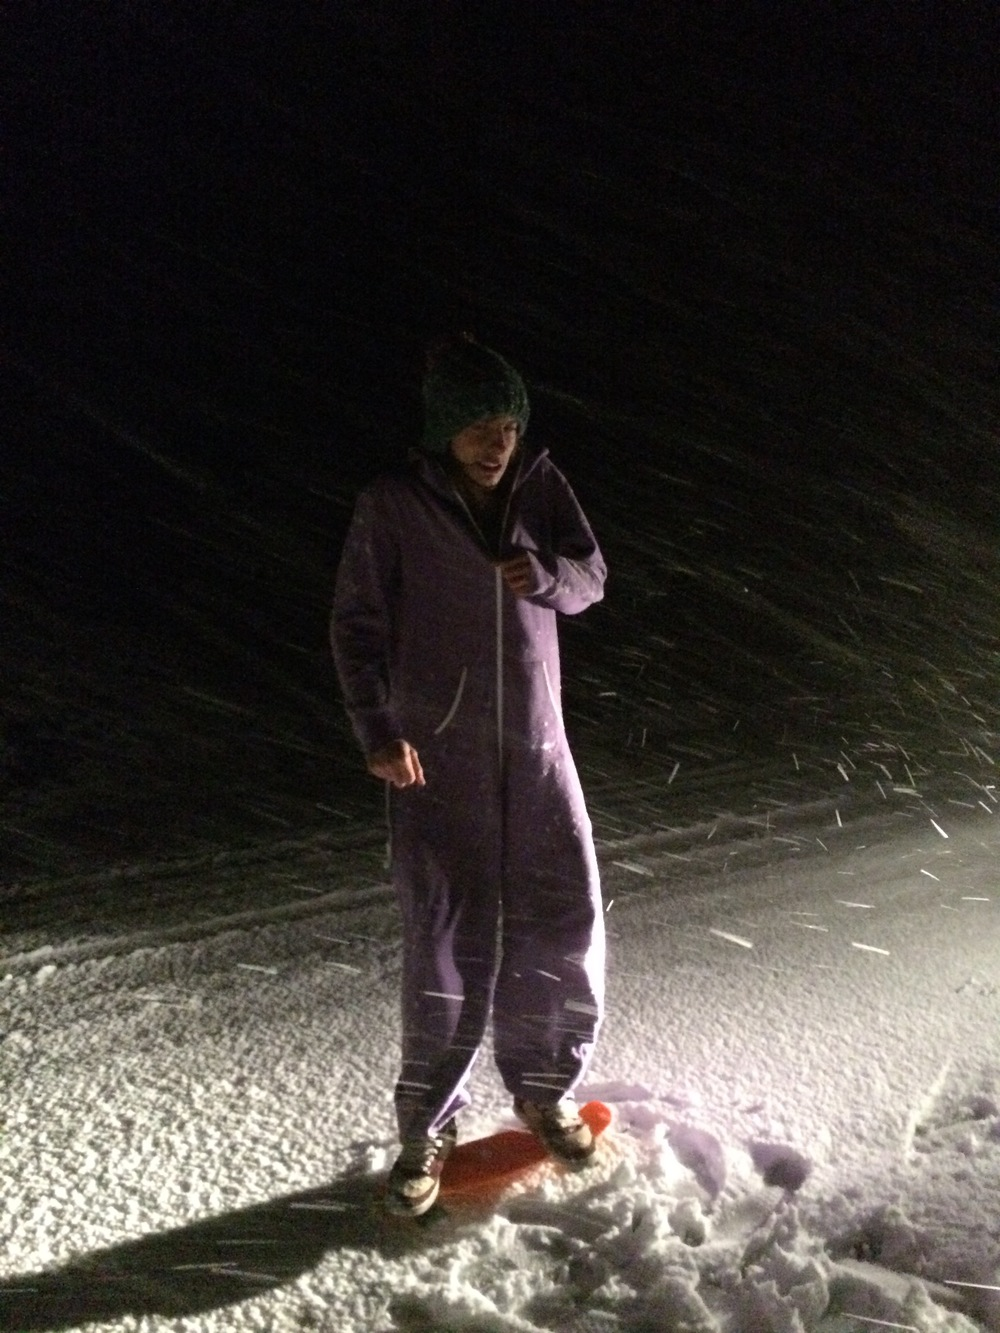 Midnight skate on the hunt for snow in the hills Photo: Enfys